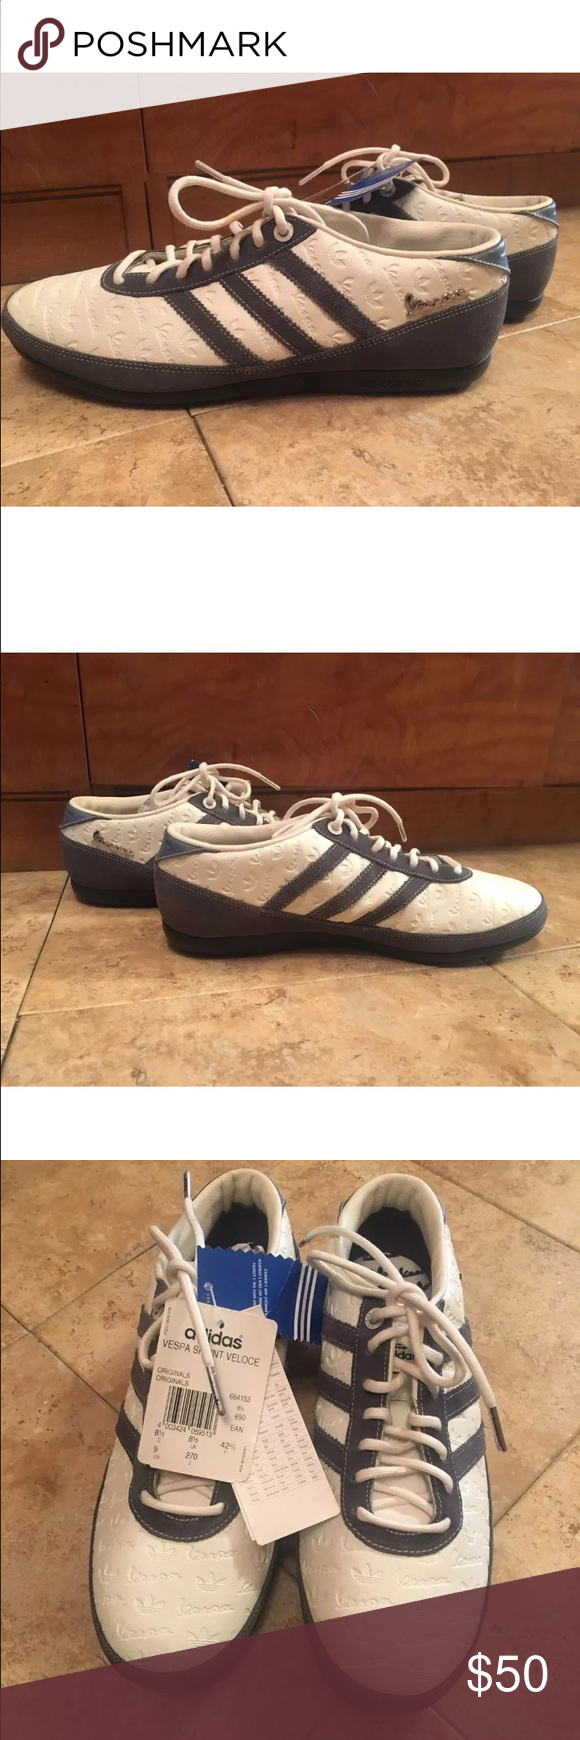 c16a9f1dfe8 New men Adidas Vespa sprint veloce size 9 Sold out everywhere really cool  adidas Vespa sprint